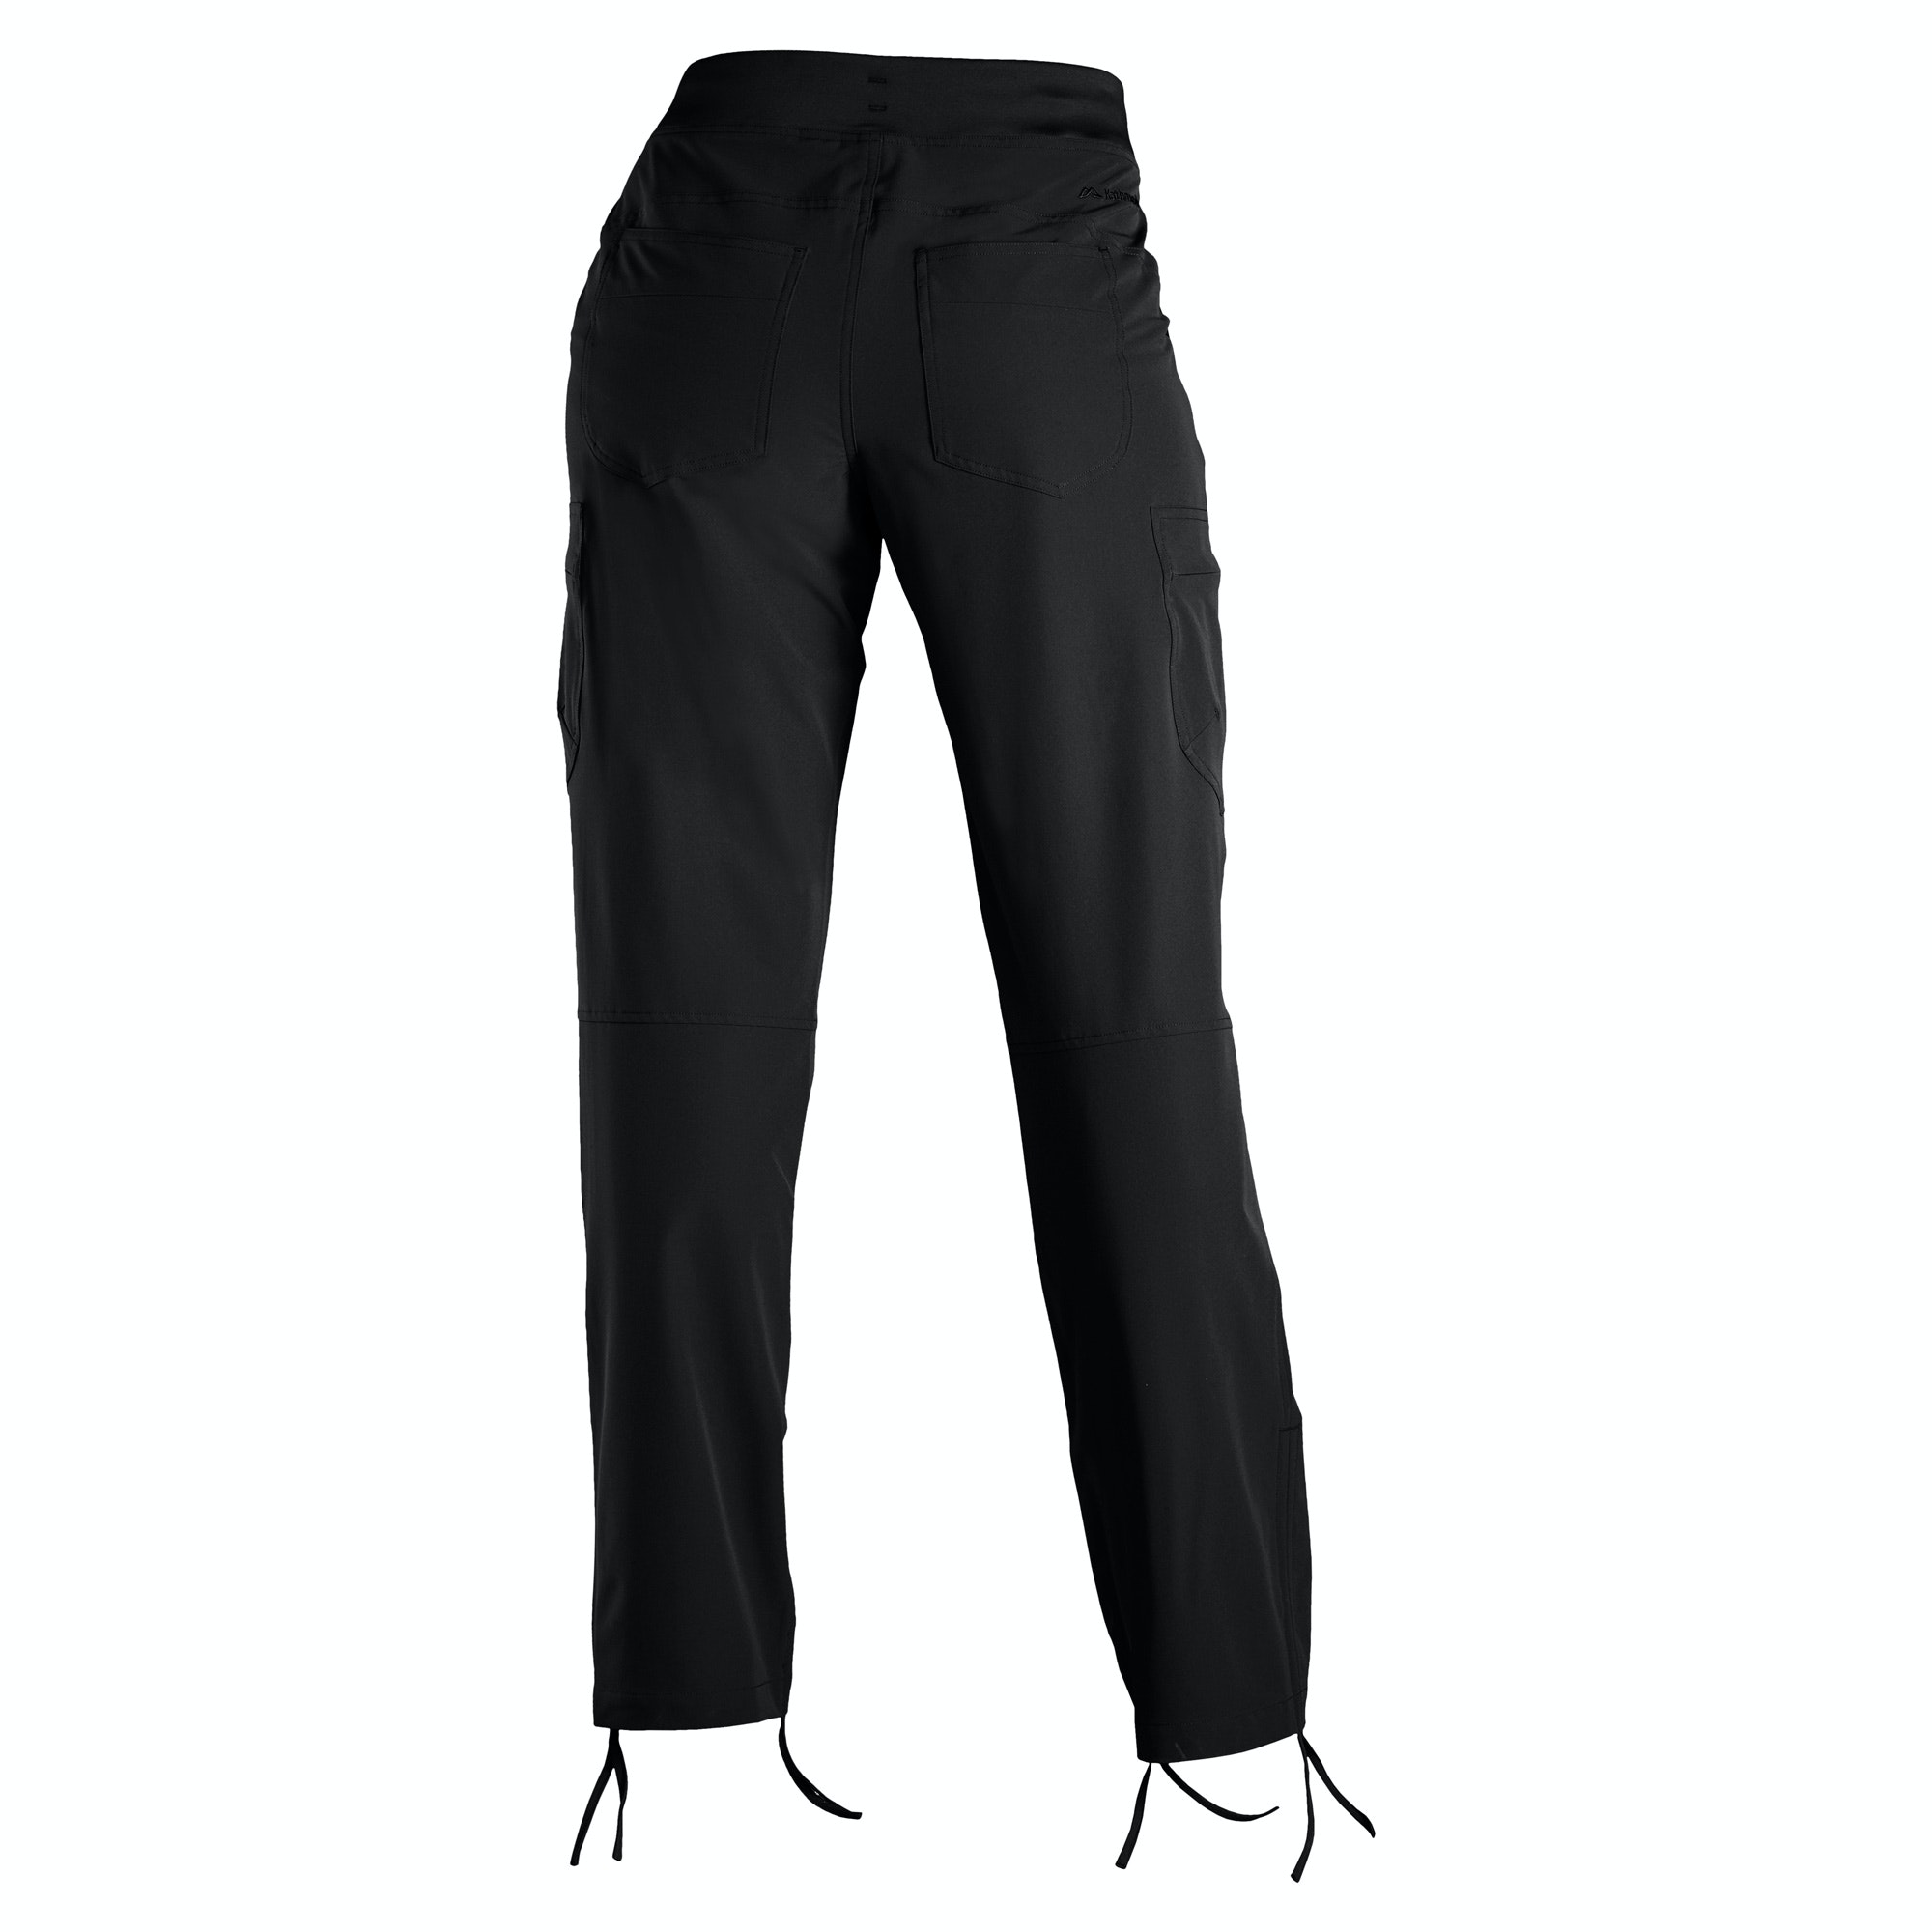 Model About Hiking Pants On Pinterest  Hiking Clothes Womens Hiking Pants